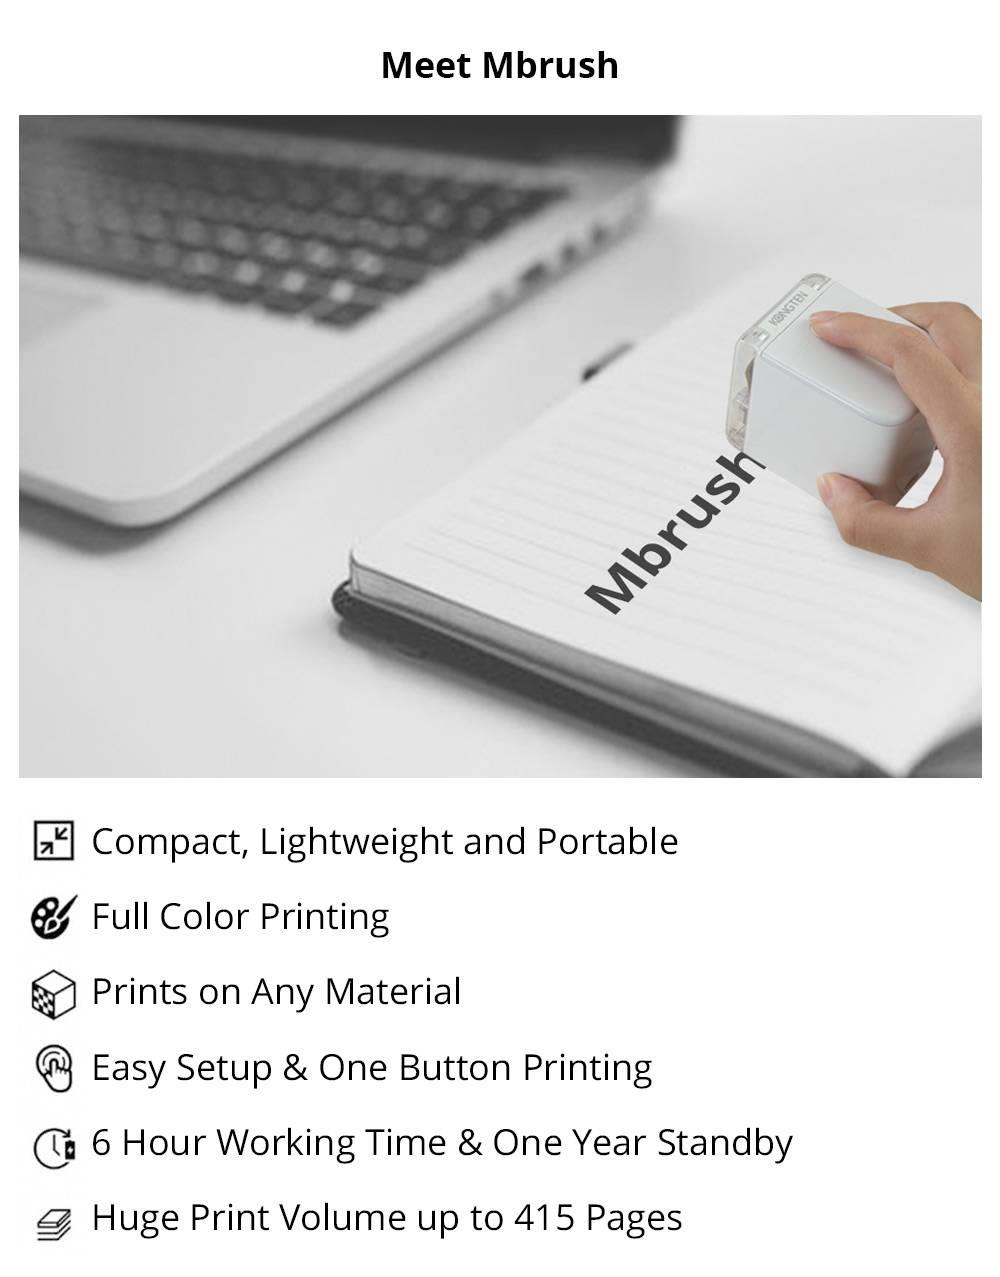 Mbrush Mobile Color Printer Portable Handheld Printer, Support WIFI USB Connection, 6 Hours Working Time, Print On Any Material - White